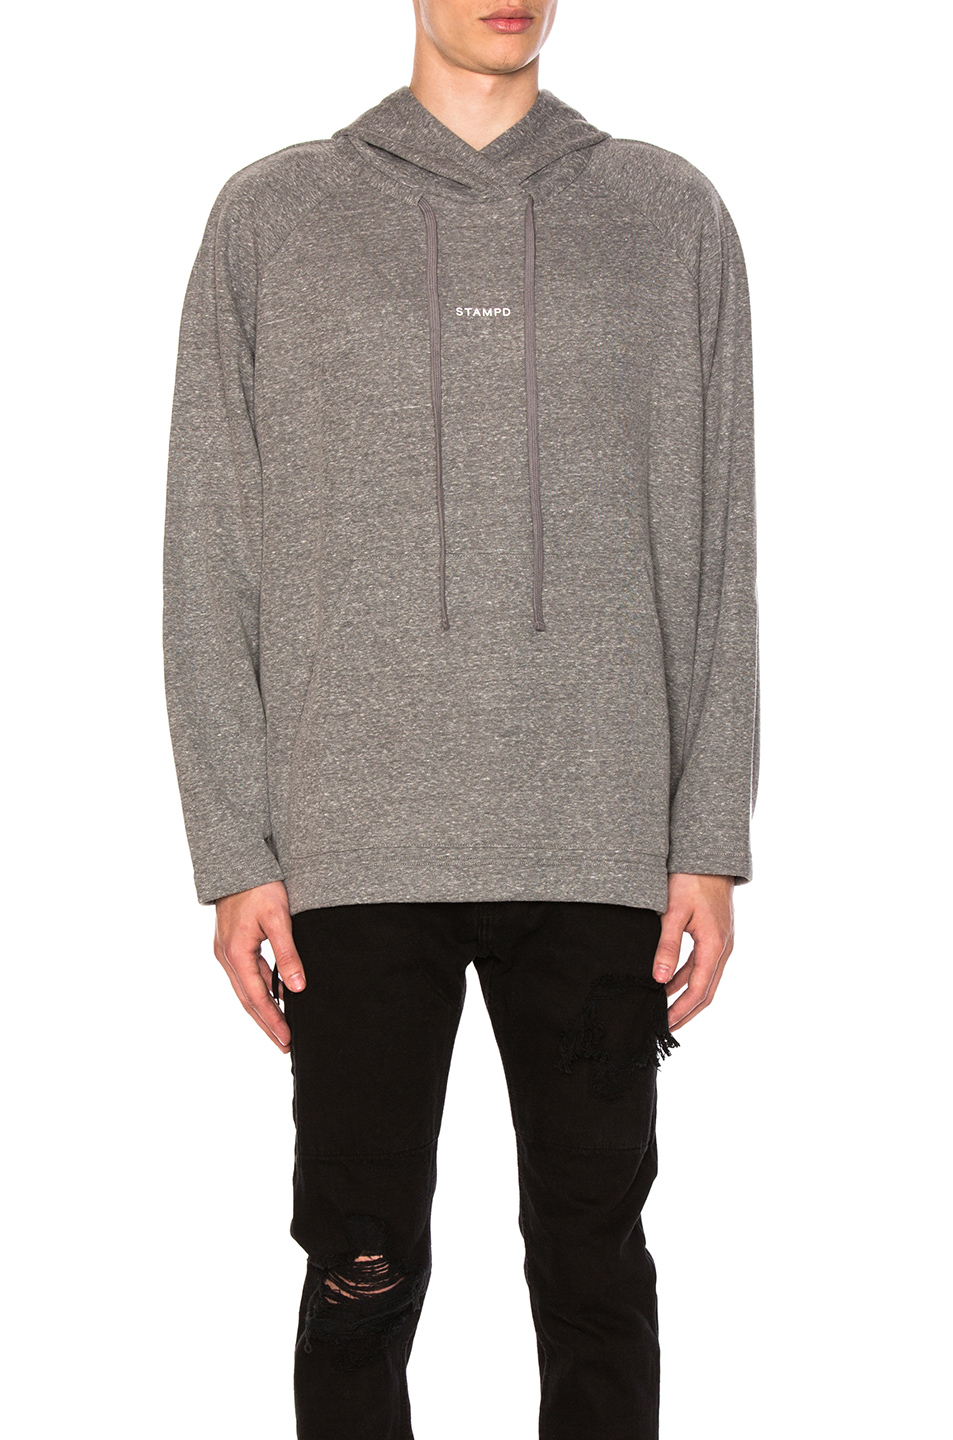 Stampd Terry Raglan Sweater in Gray